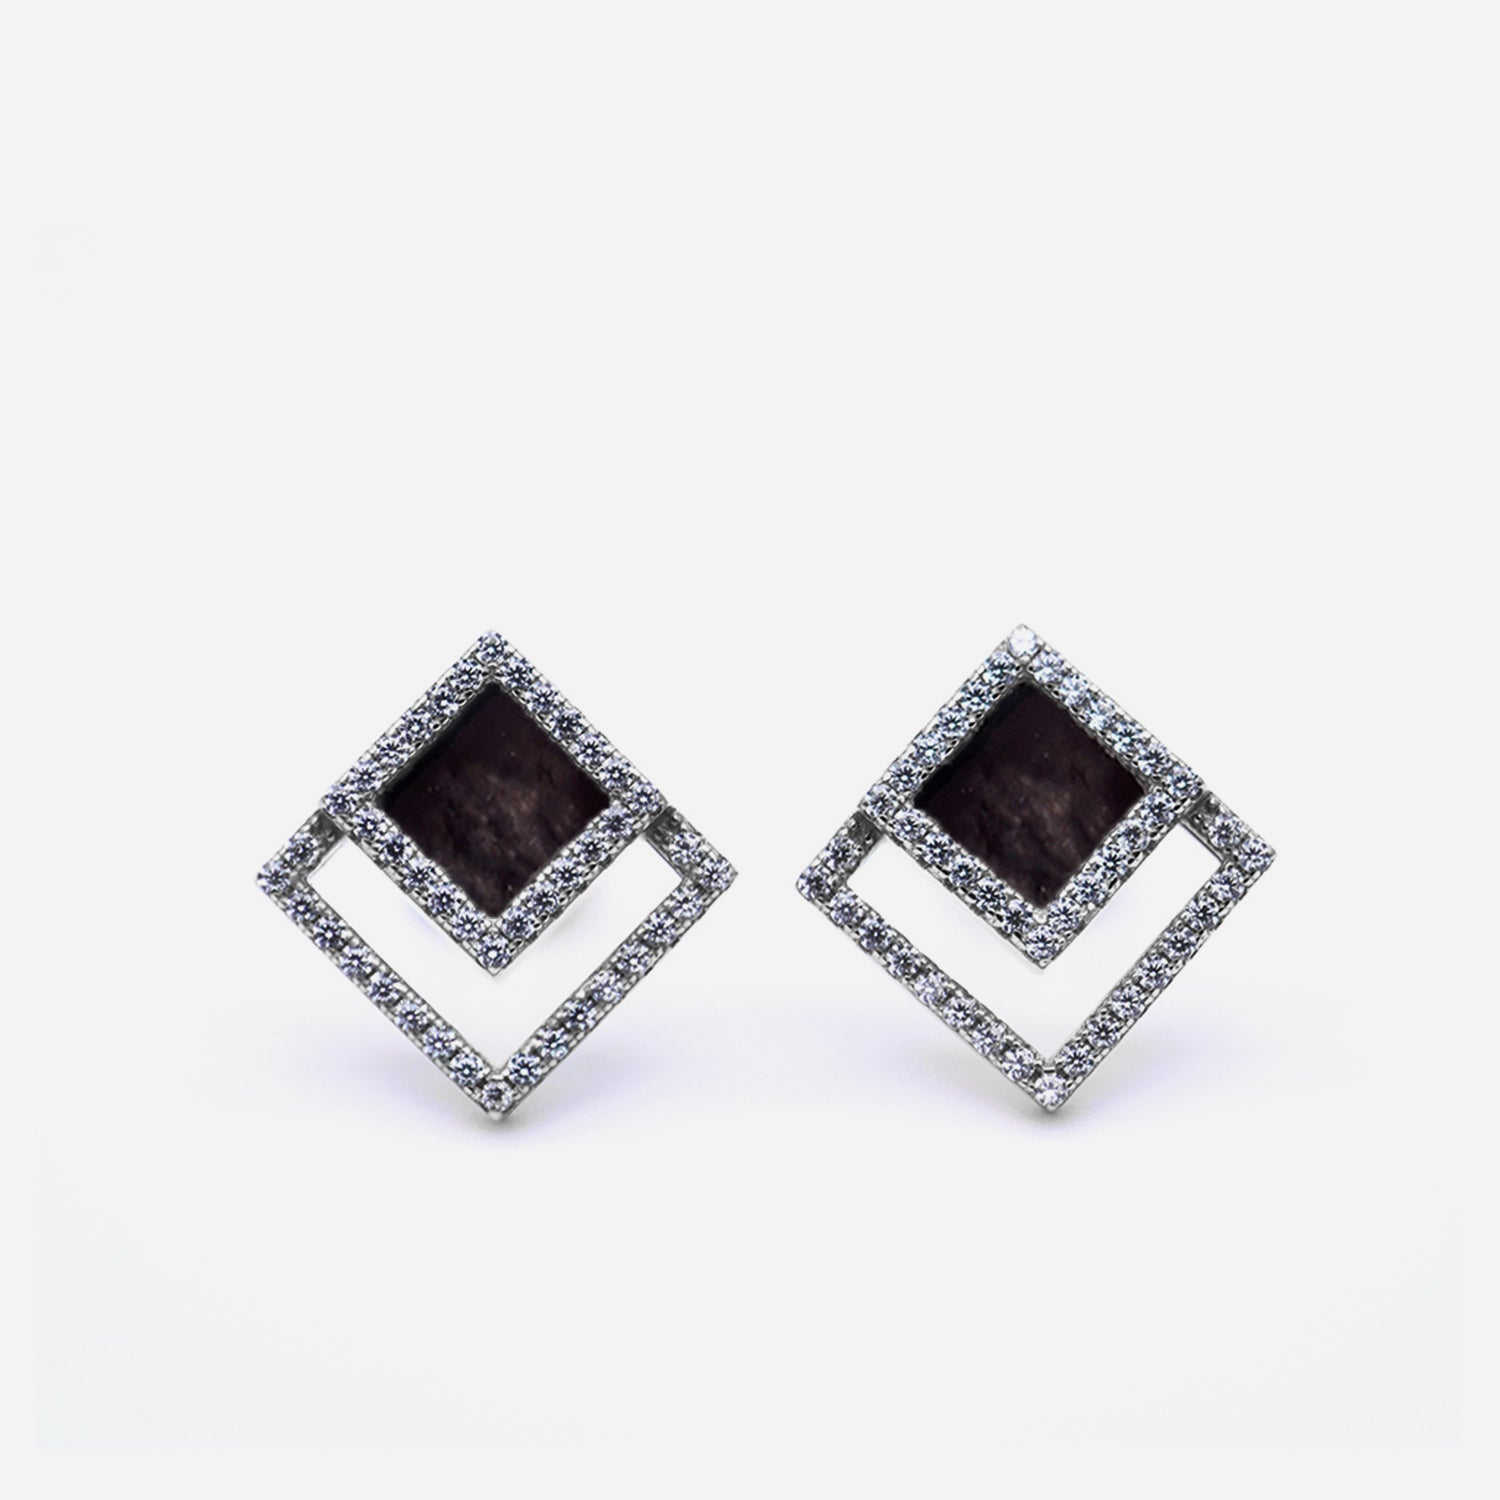 TERRA 方 Earring Studs in Black Jade